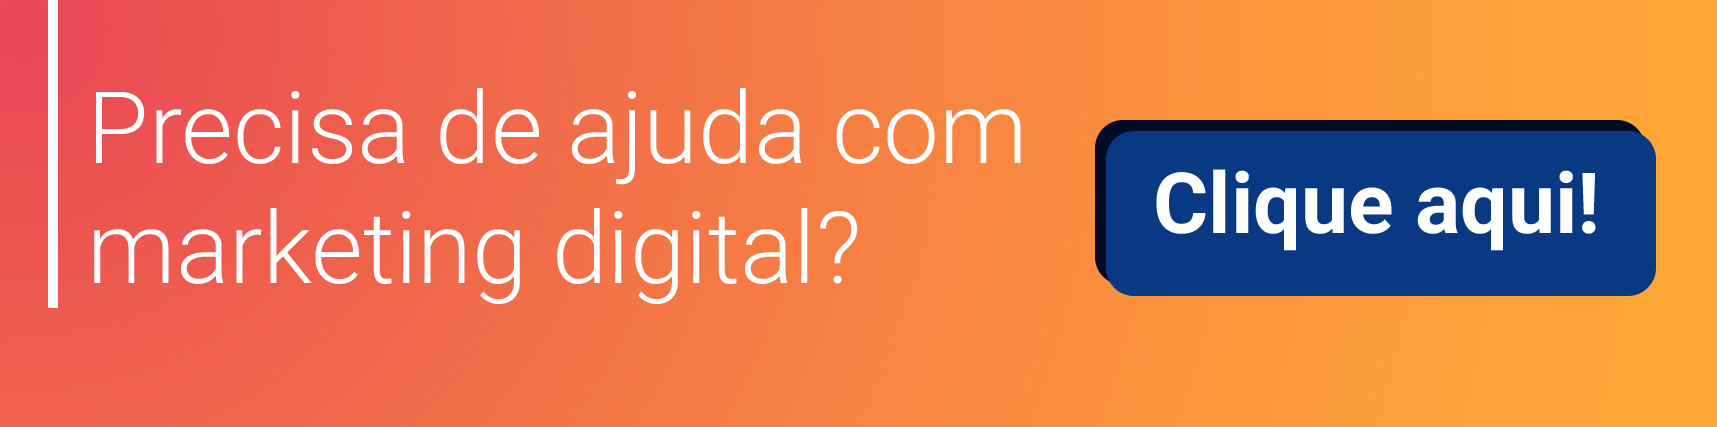 ajuda-marketing-digital